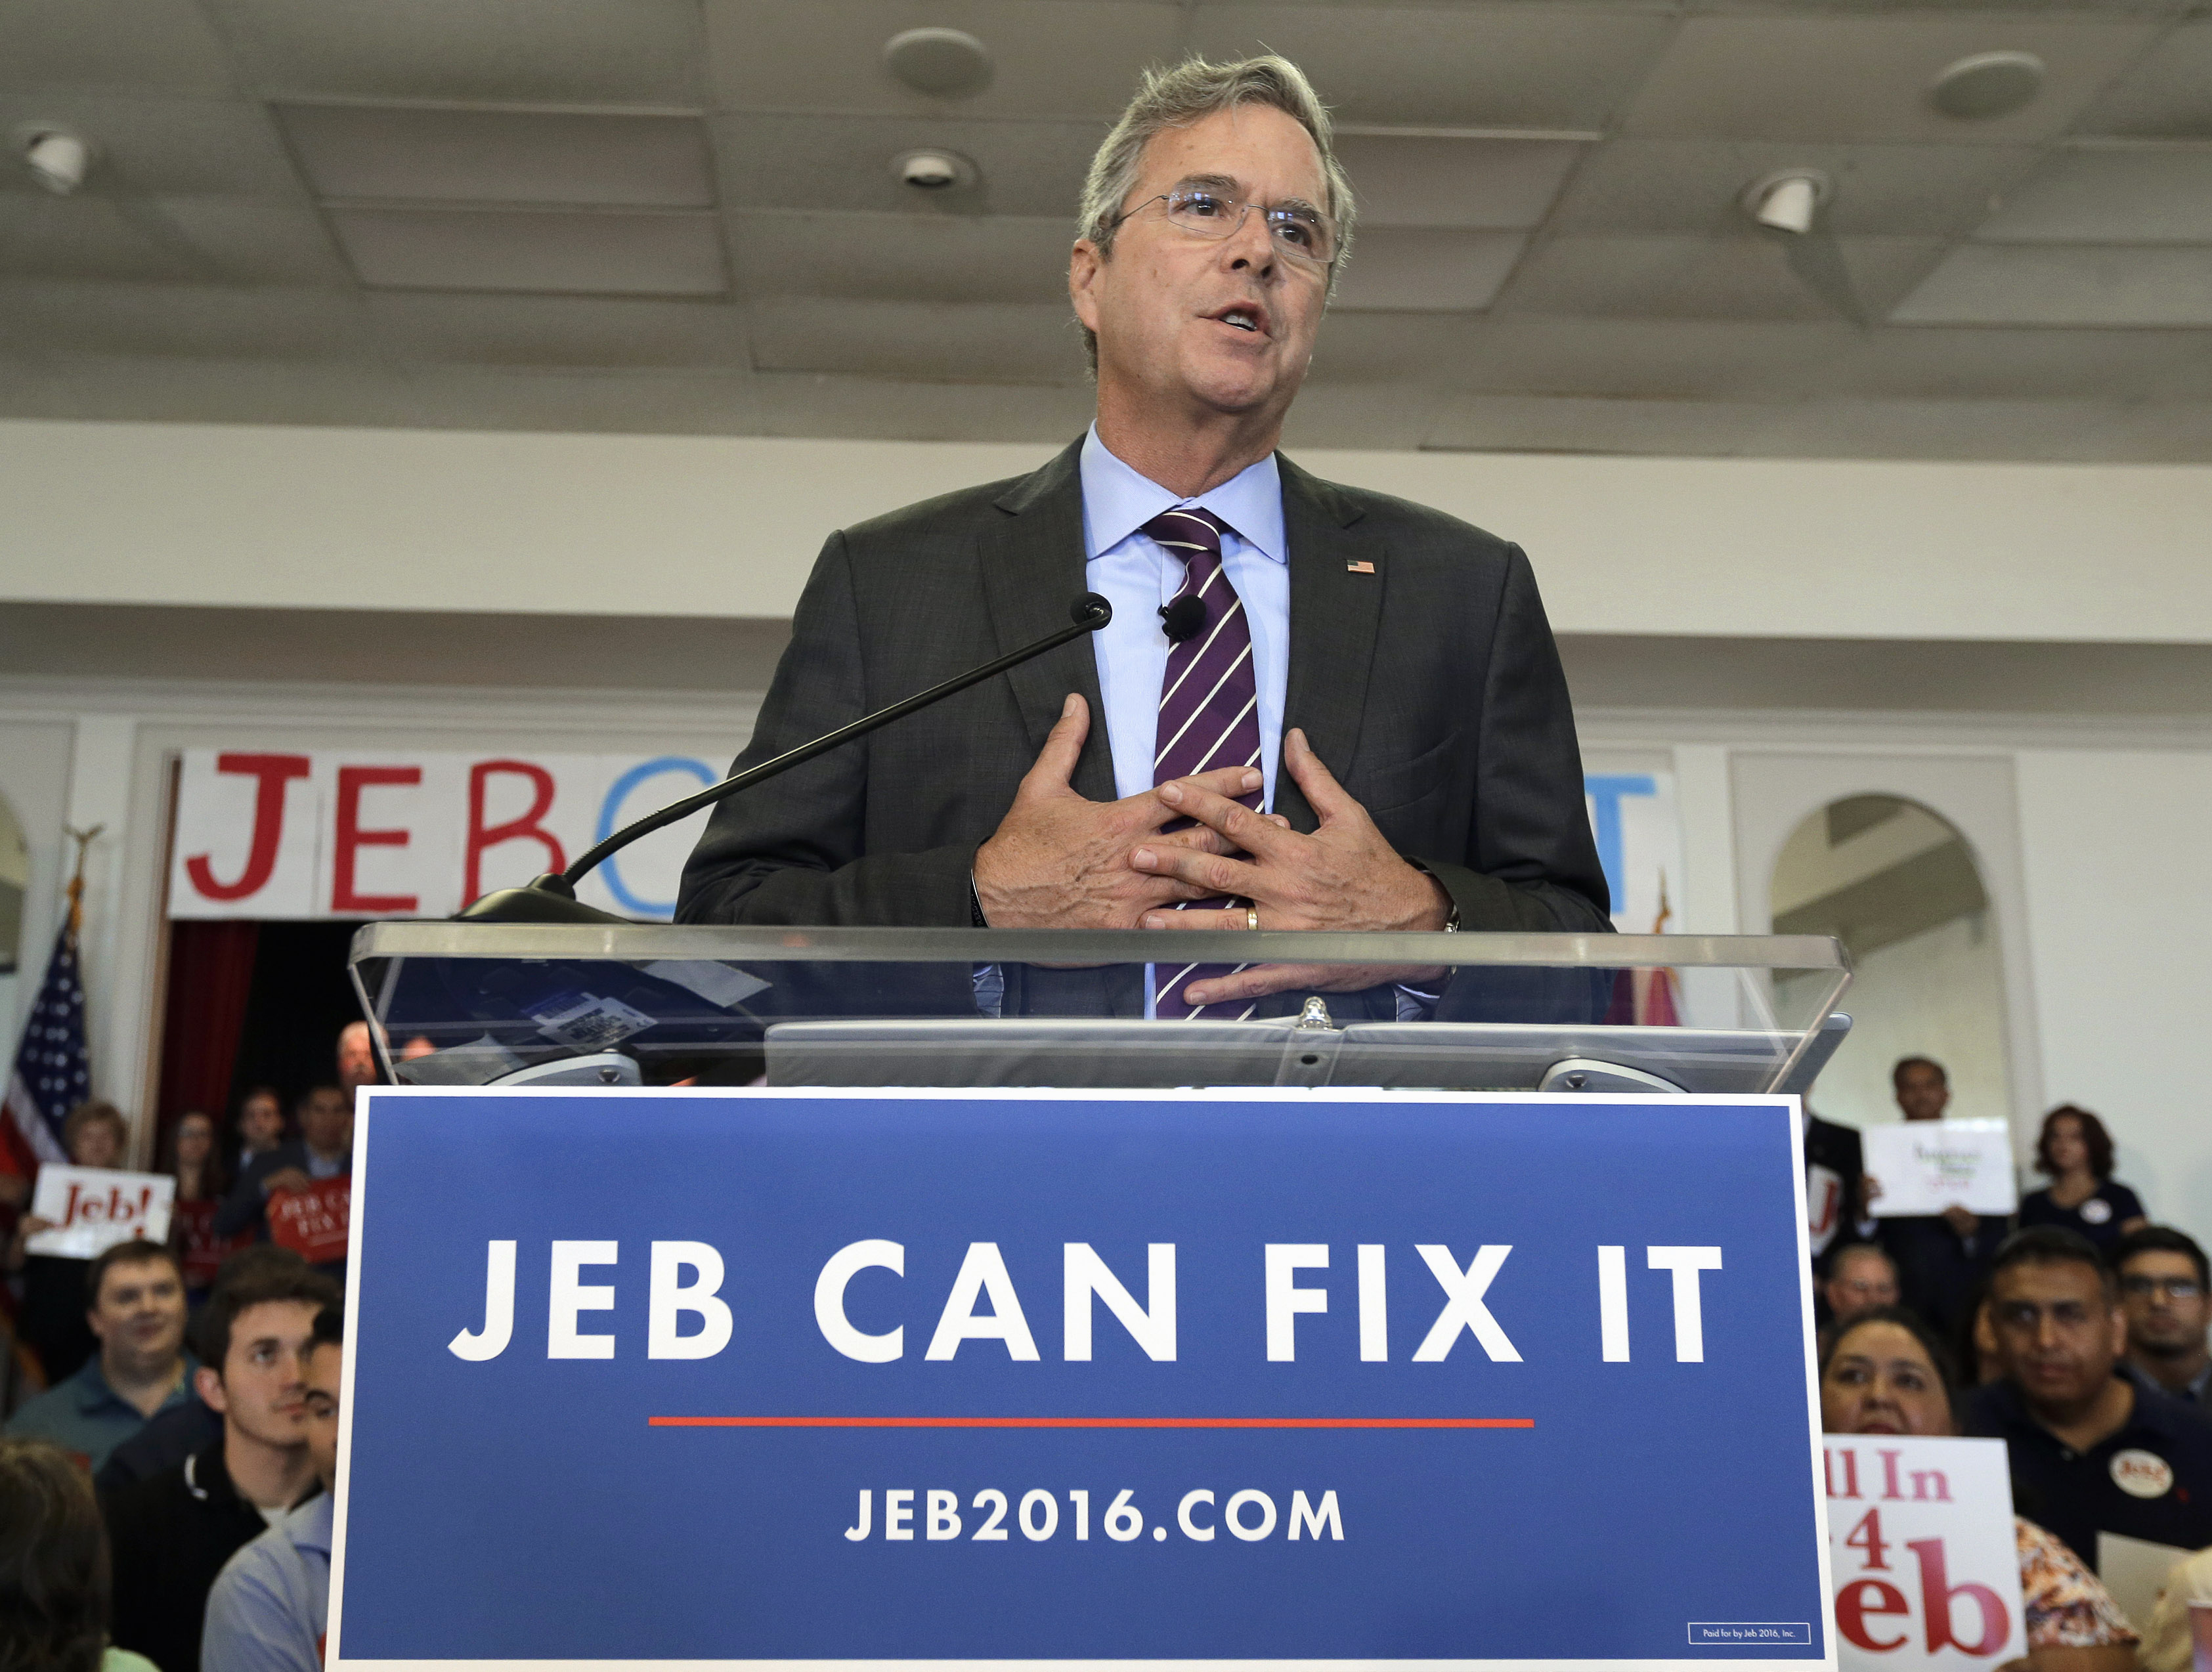 Republican presidential candidate Jeb Bush speaks to supporters during a rally Nov. 2, 2015, in Tampa, Fla.